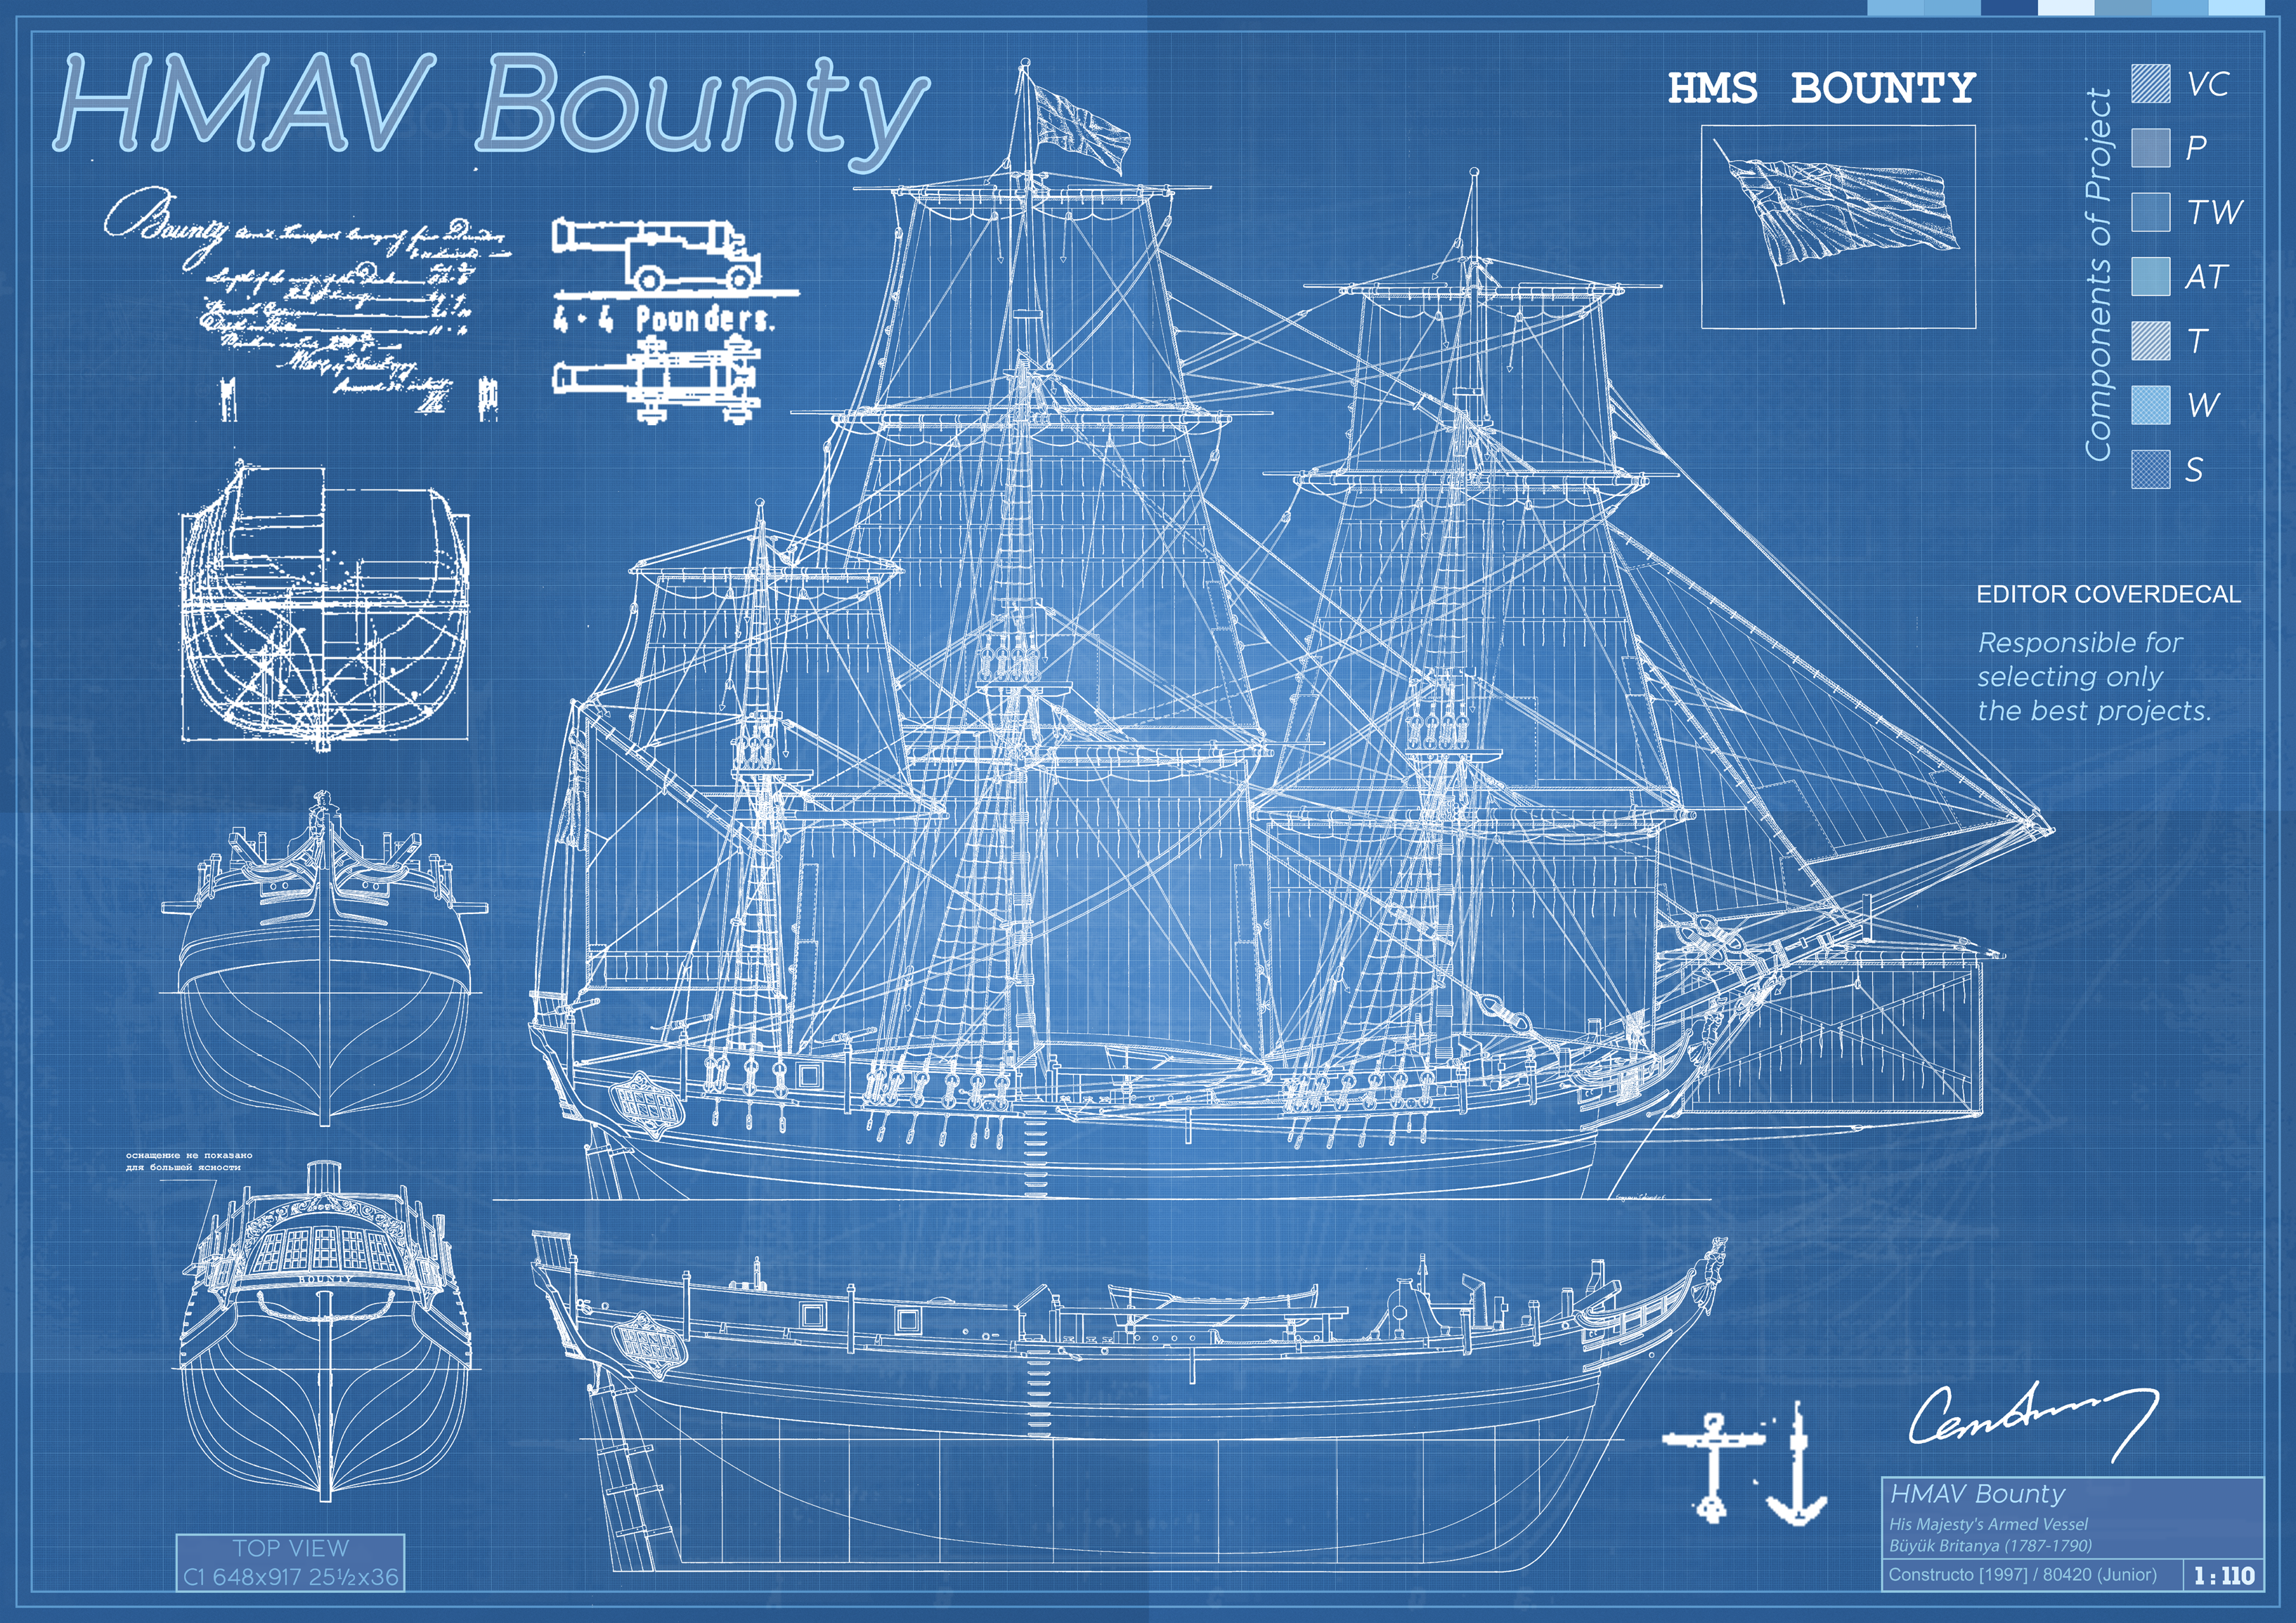 Blueprint work bounty by cemavci on deviantart blueprint work bounty by cemavci blueprint work bounty by cemavci malvernweather Images